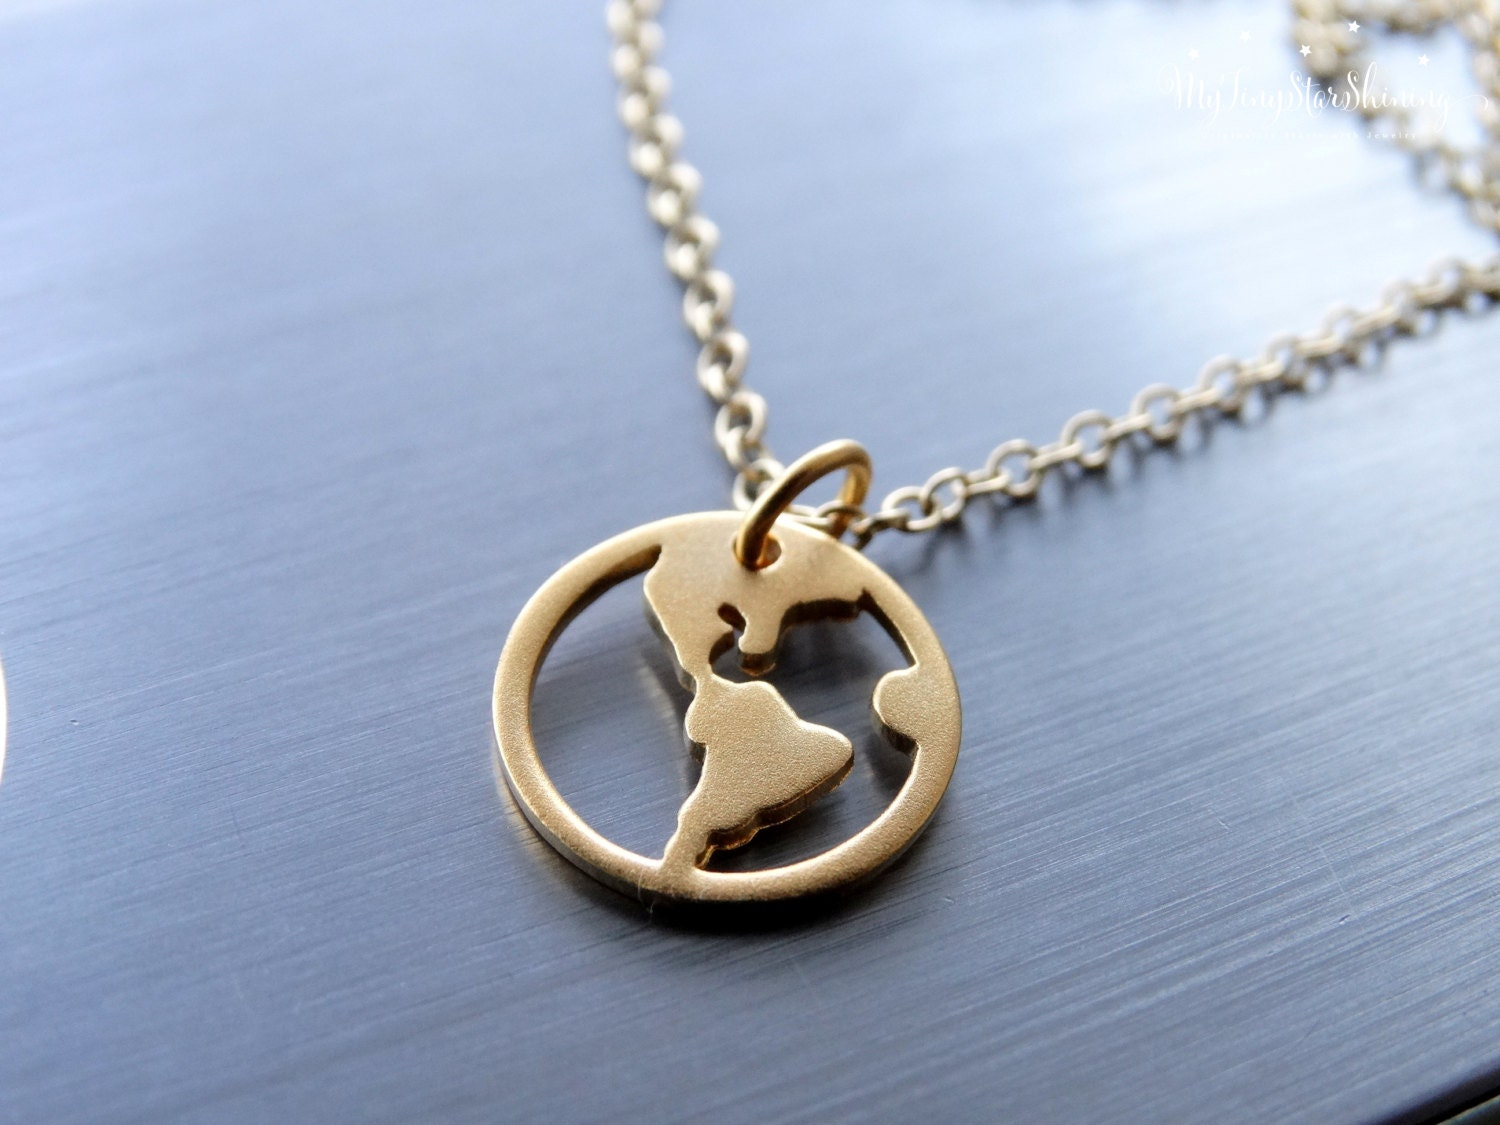 Gold world map necklace map necklace world charm necklace map gold world map necklace map necklace world charm necklace map jewelry travel necklace world map necklace gold filled necklace gumiabroncs Image collections